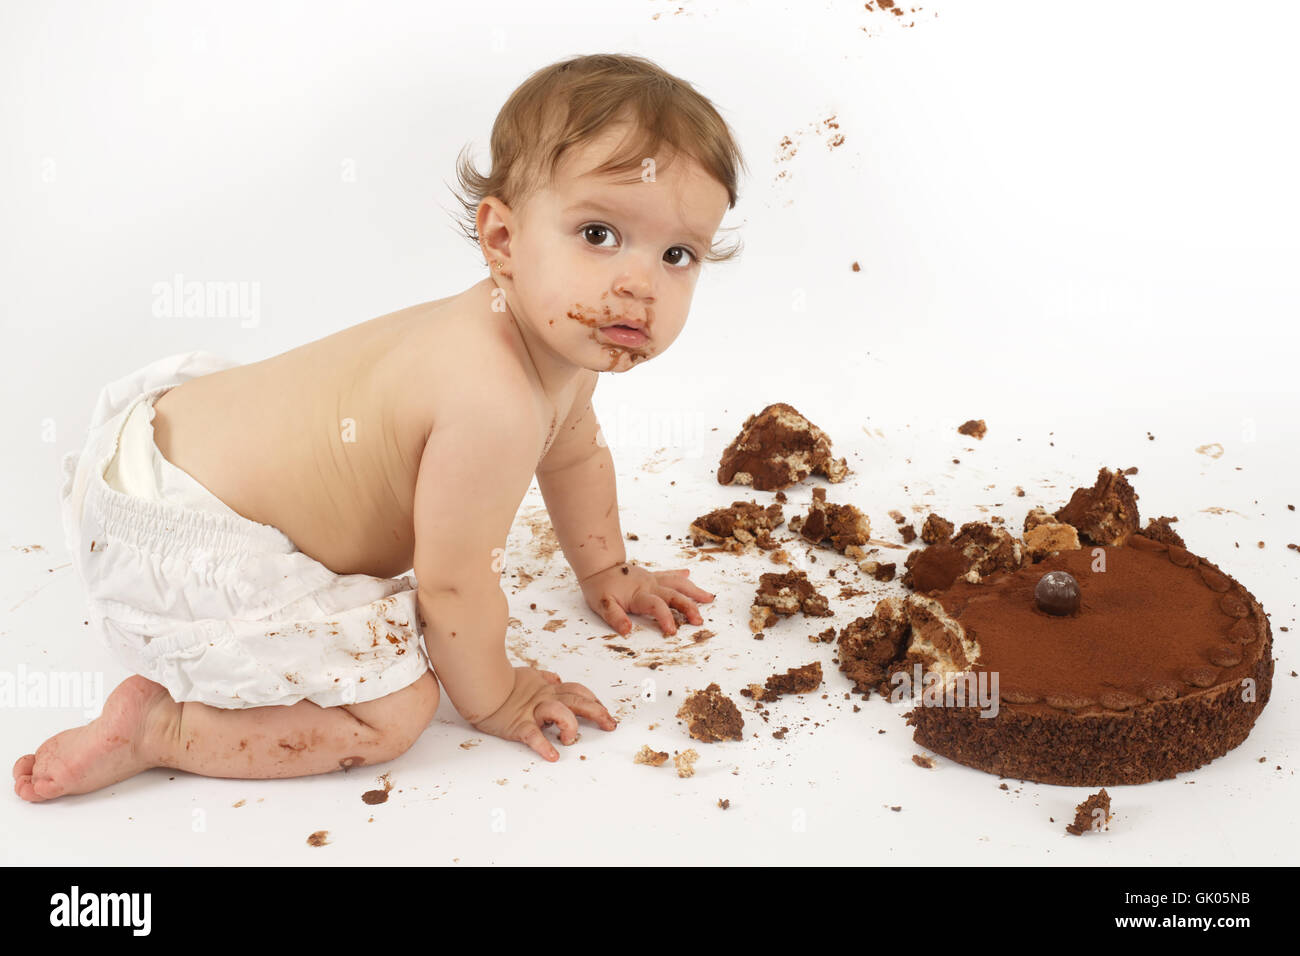 baby confusion mess - Stock Image